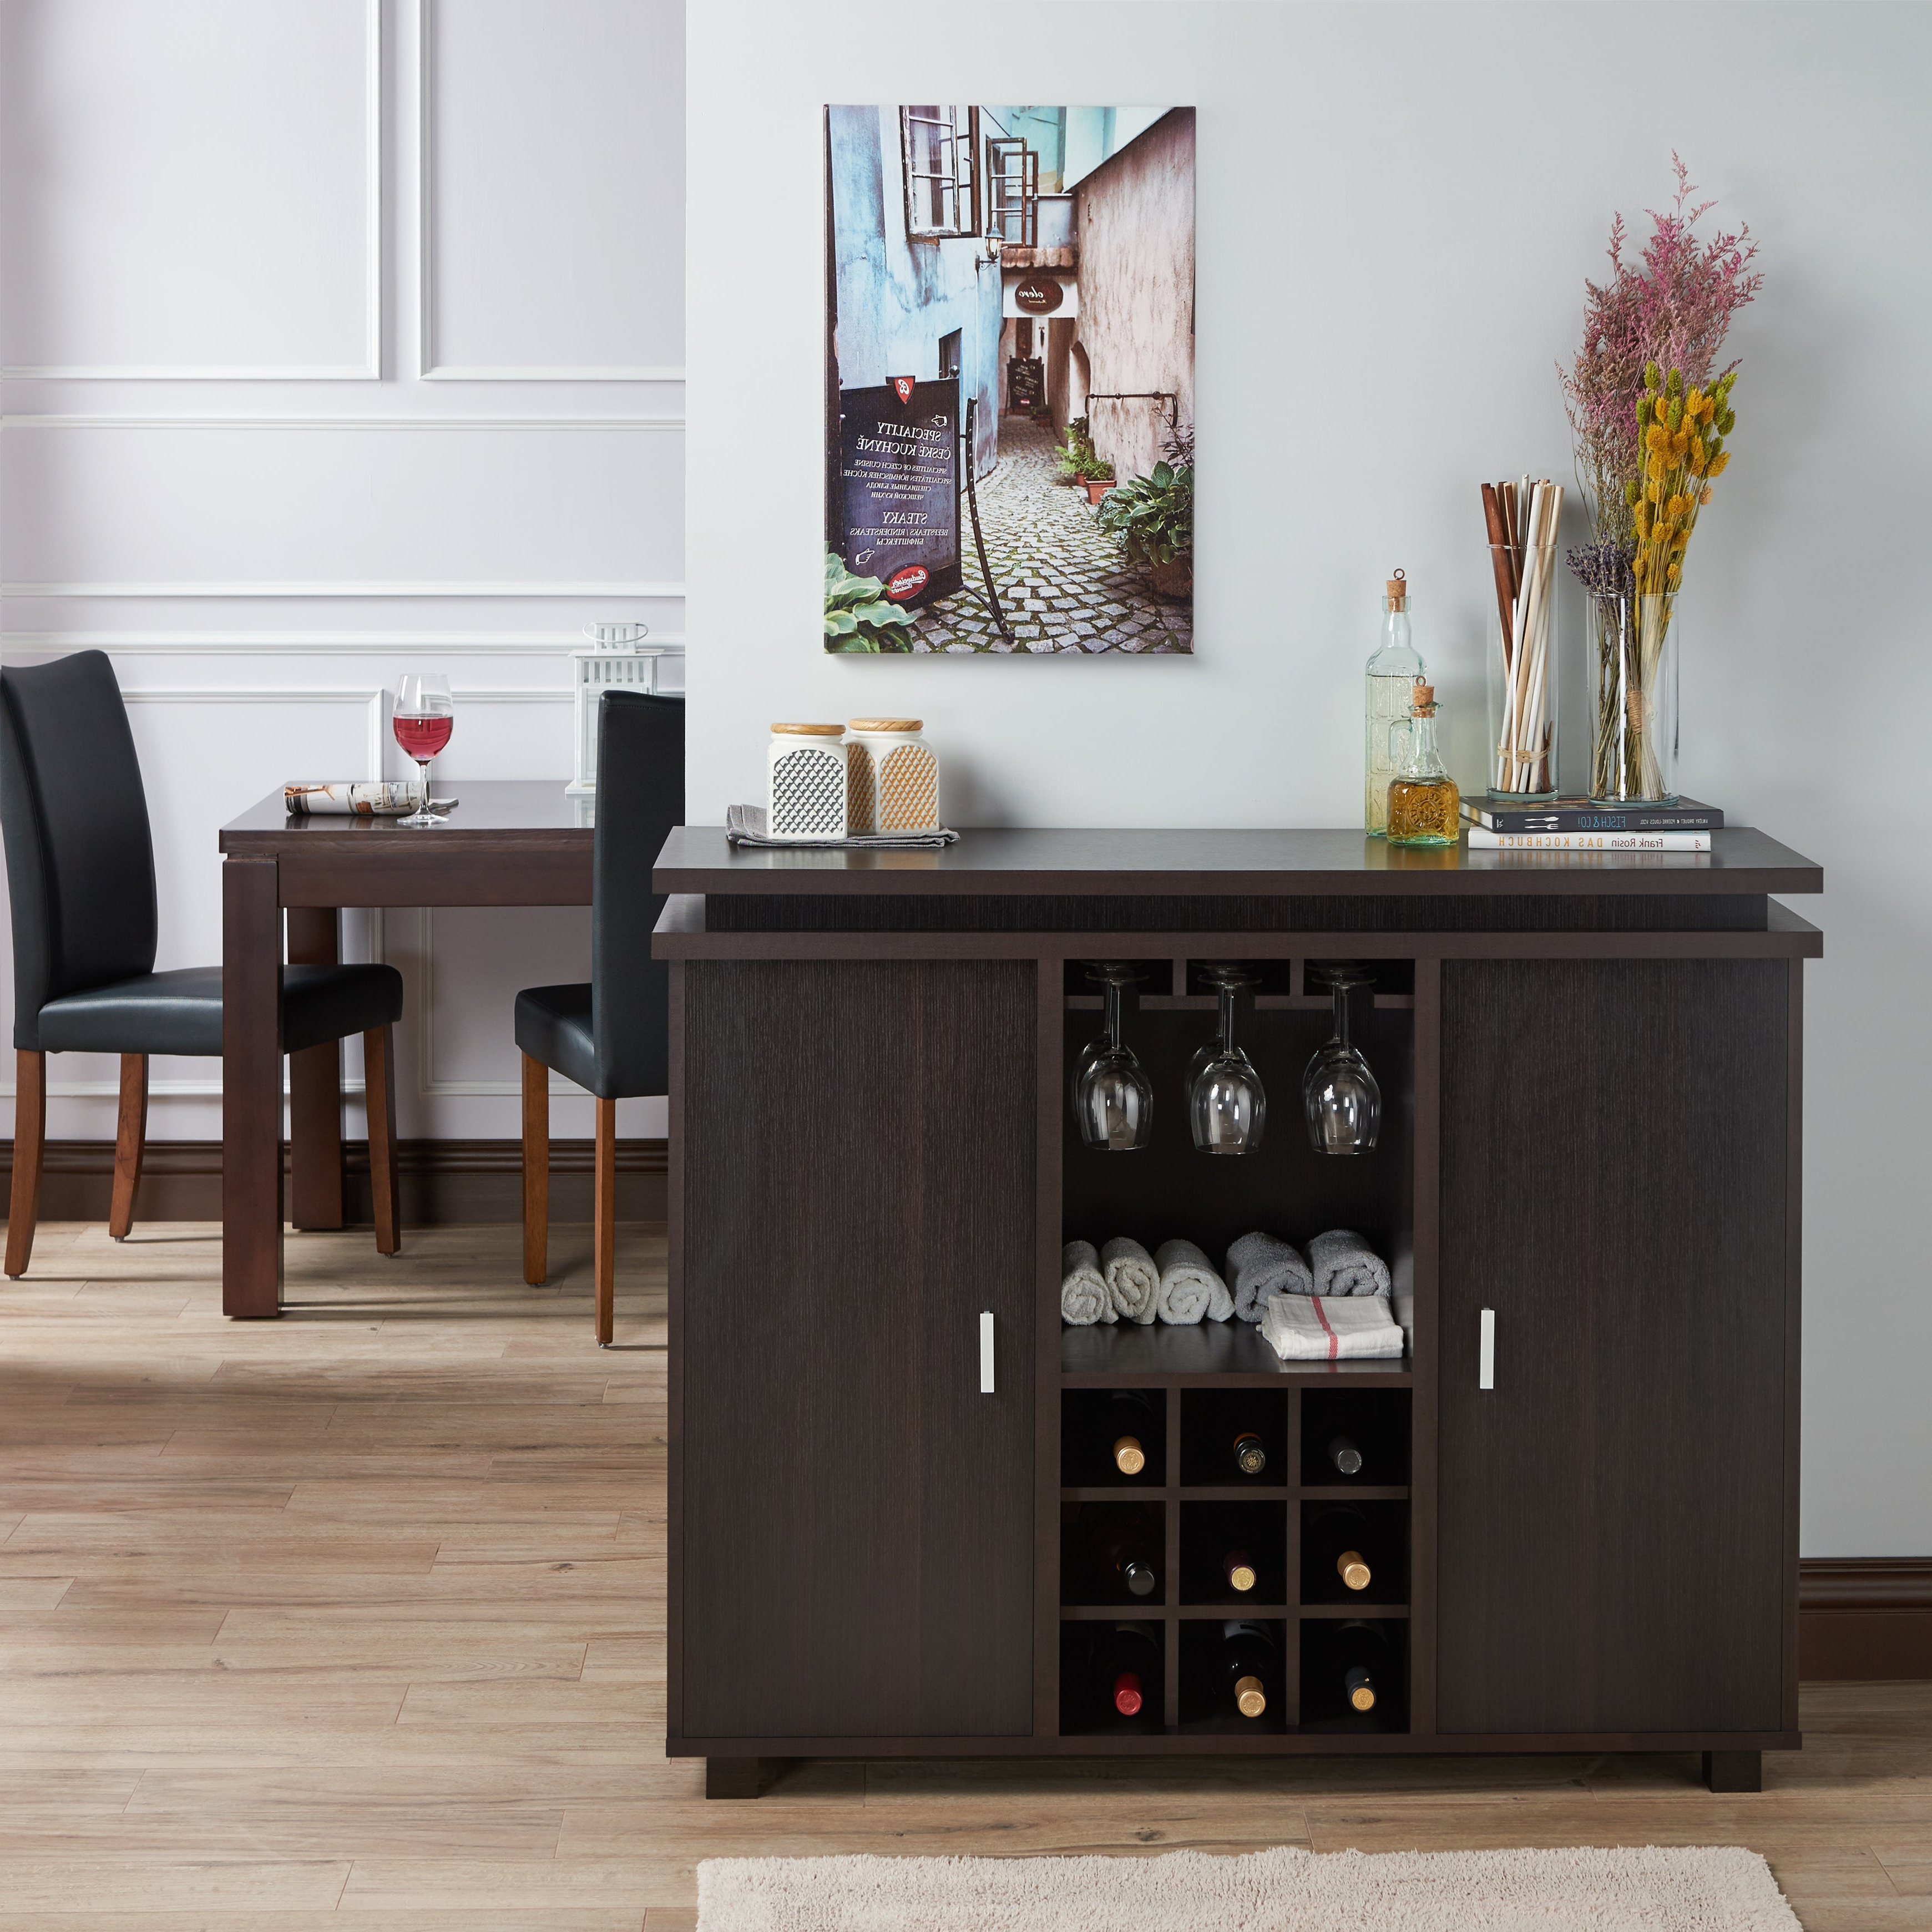 Furniture Of America Mirande Contemporary Espresso Dining Buffet With Wine  Storage Intended For Contemporary Espresso 2 Cabinet Dining Buffets (View 9 of 20)